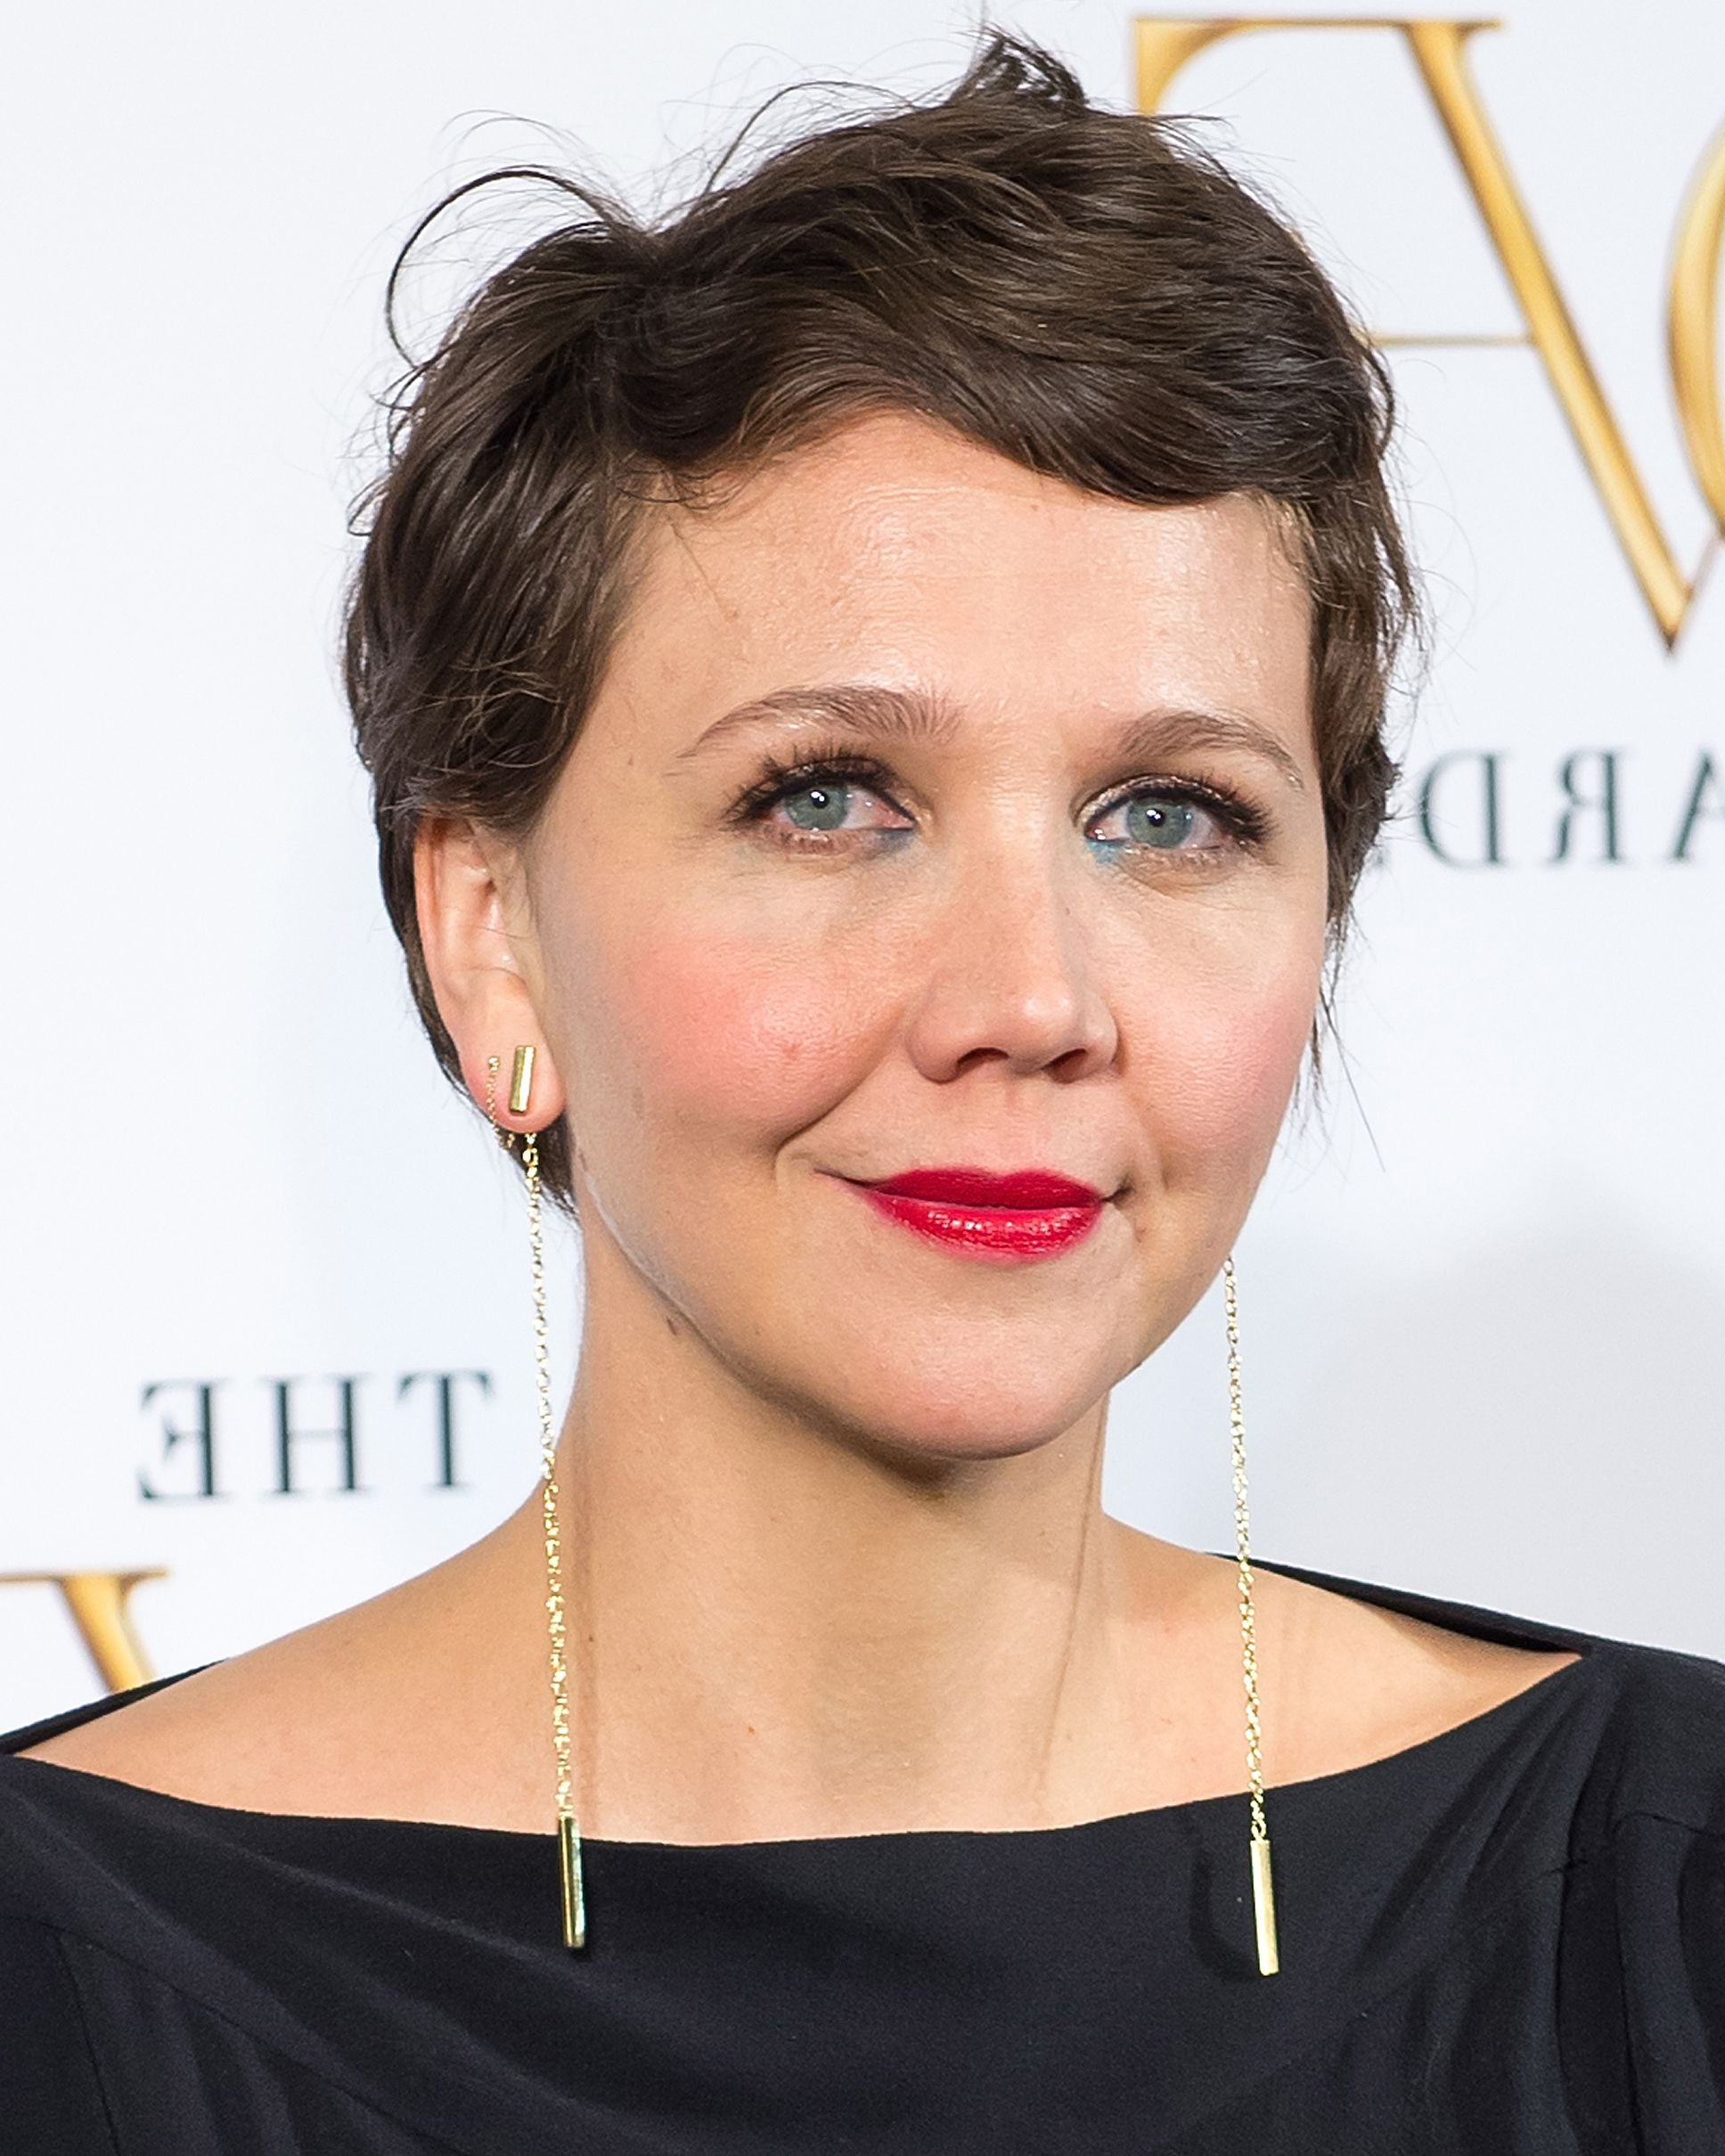 32 Best Short Hair Styles – Bobs, Pixie Cuts, And More Celebrity With Scarlett Johansson Short Hairstyles (View 18 of 25)